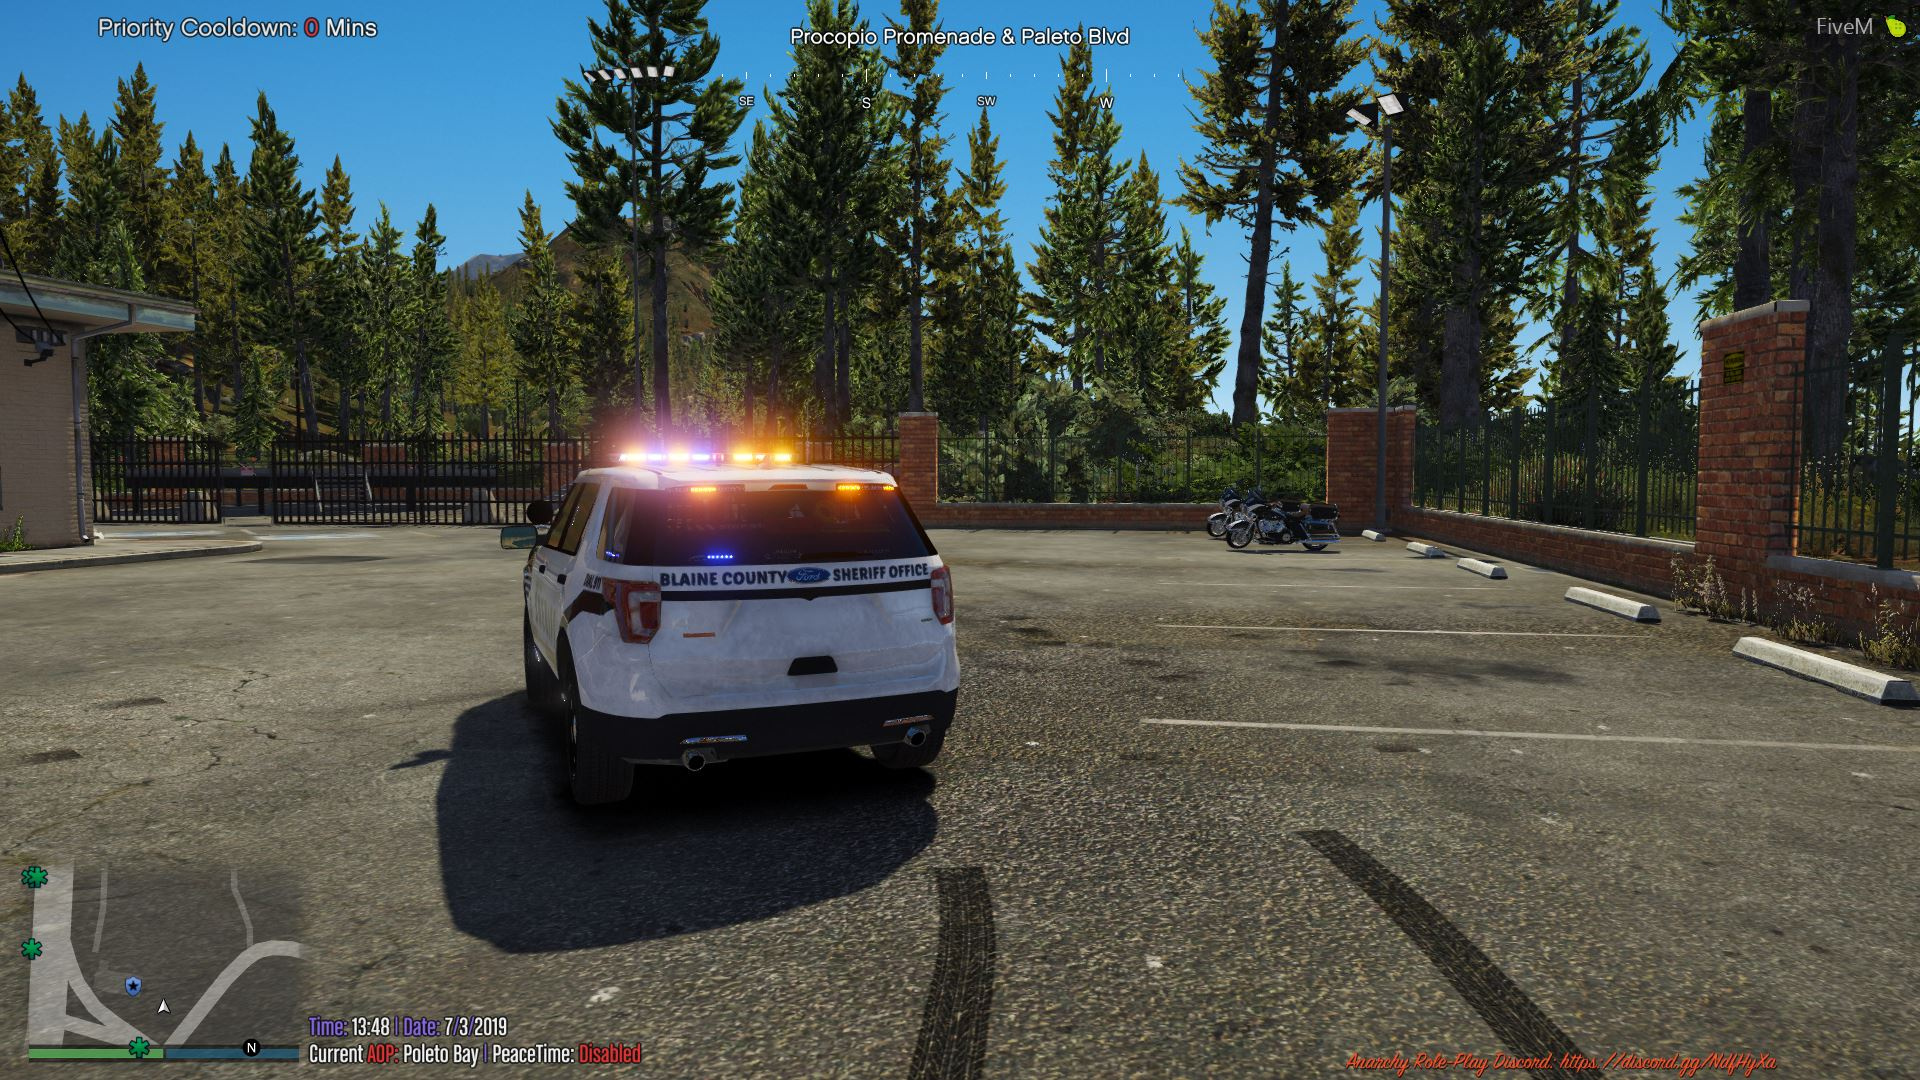 Blaine County Sheriff's Office BnW Small Skin Pack [NON-ELS